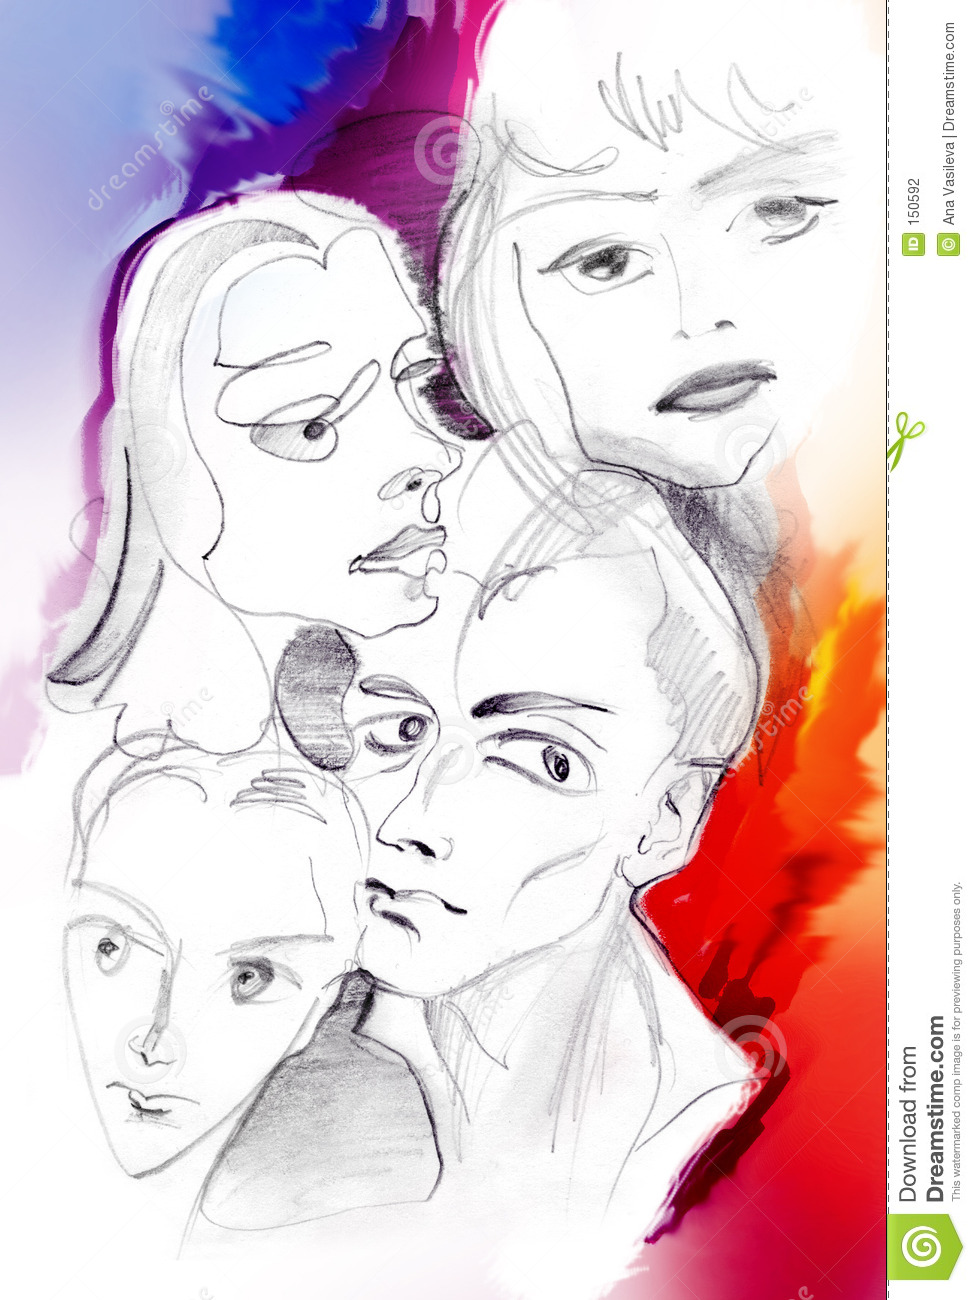 Four people s faces - colored sketch